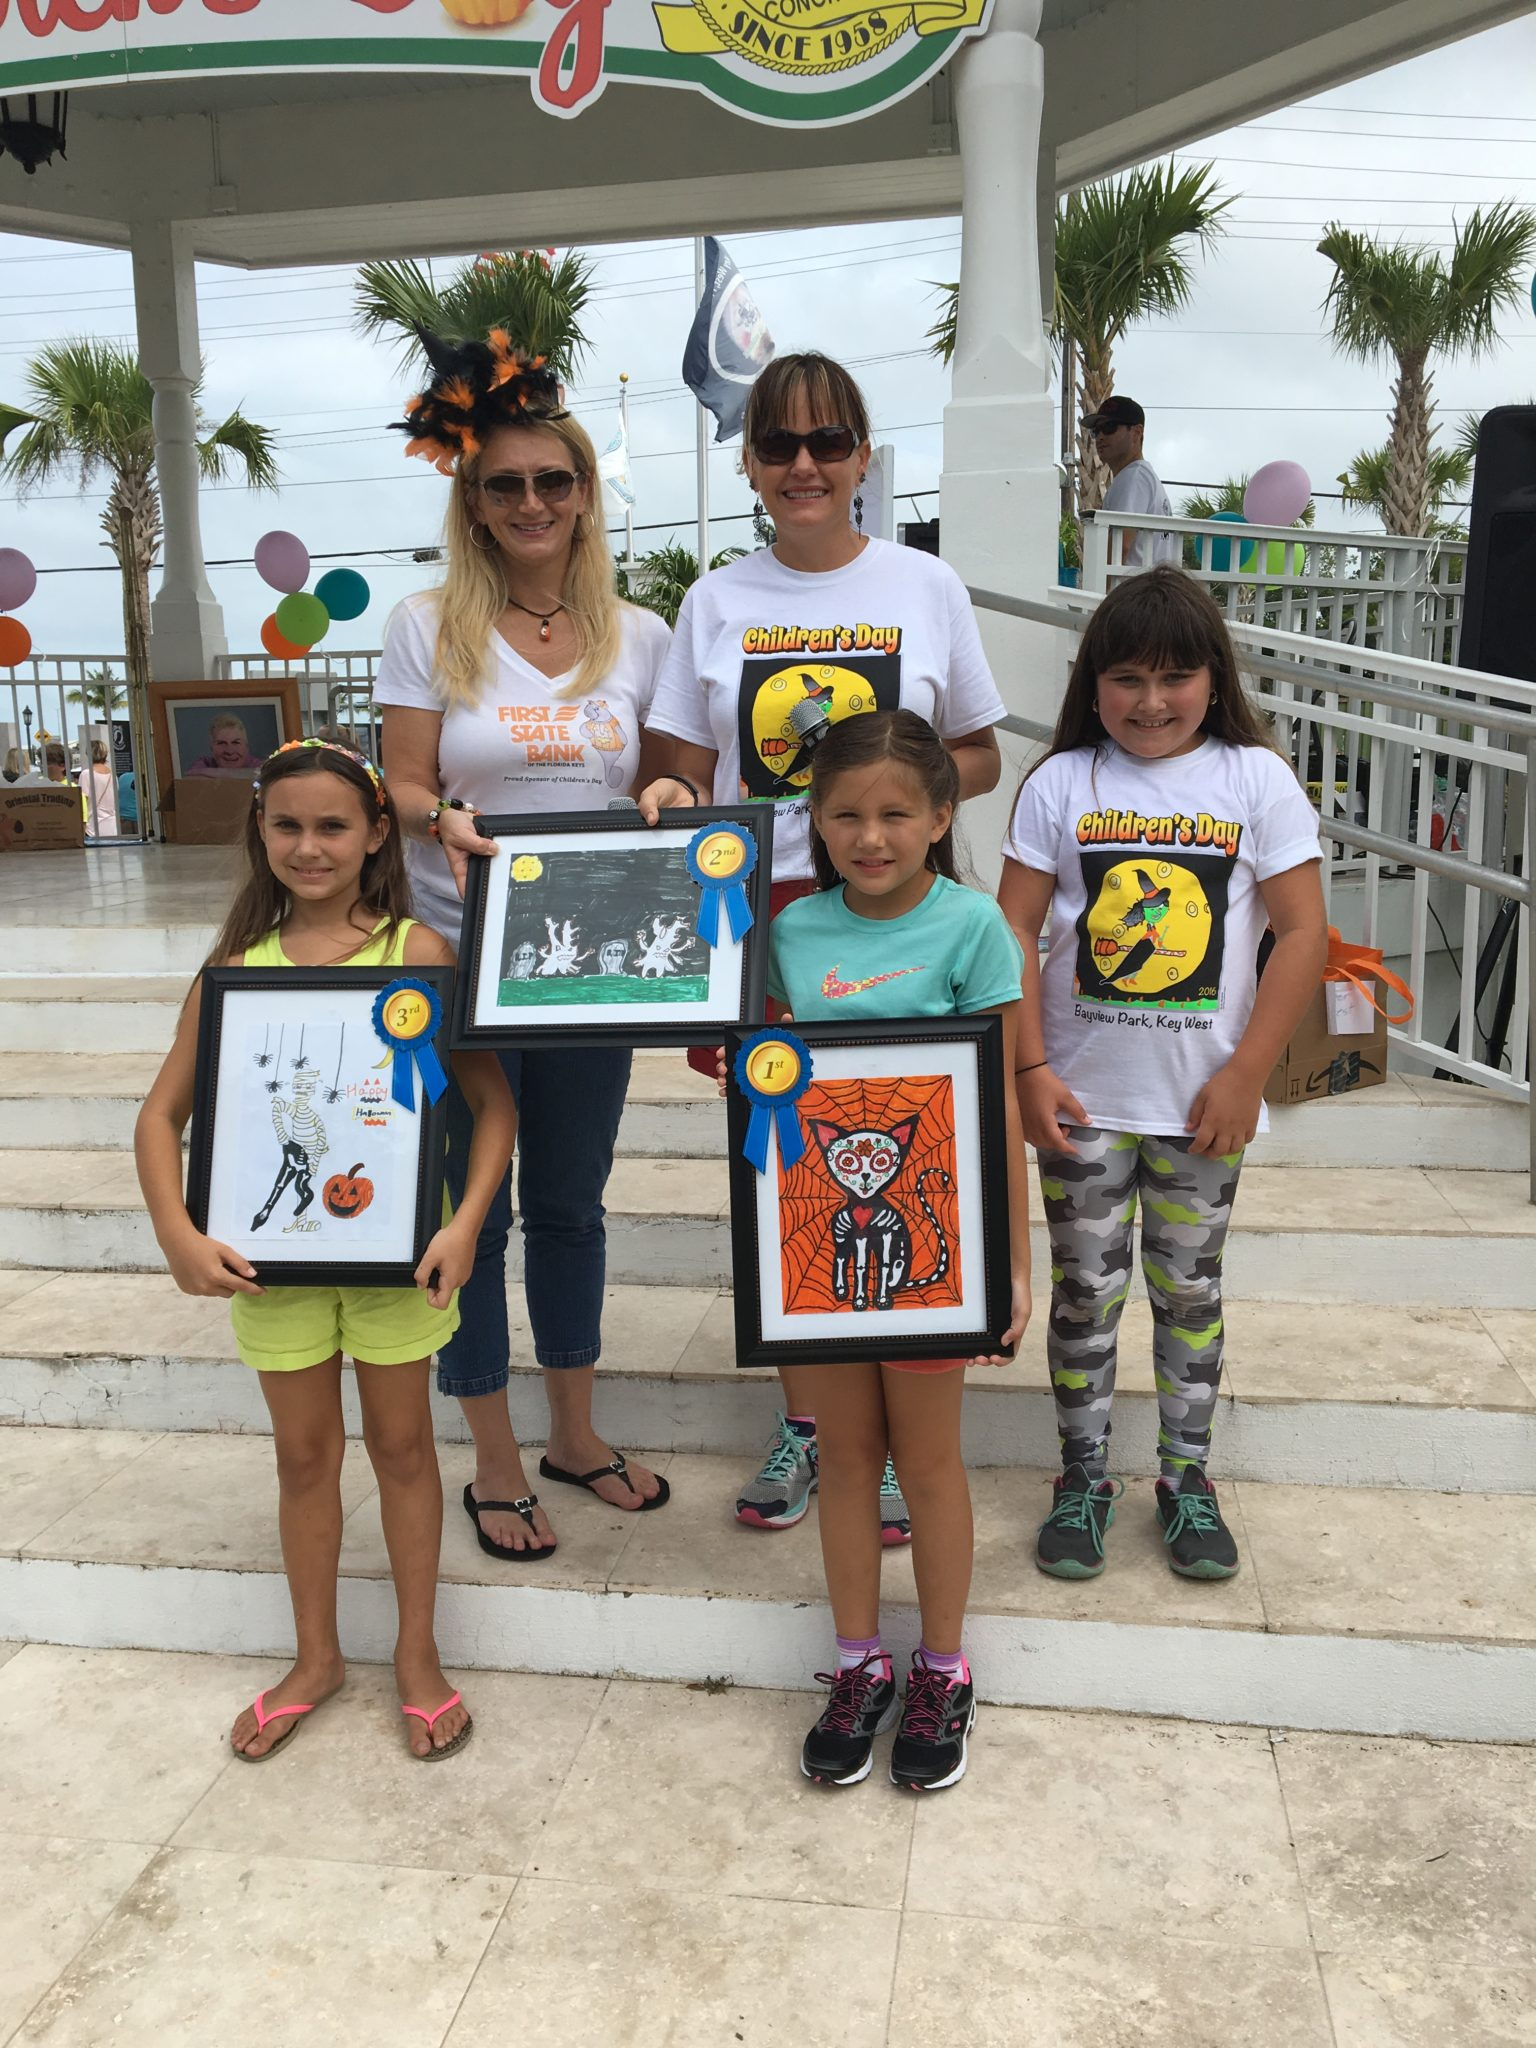 Ava Rivera, 8, right, sports her winning 2016 design for this year's Children's Day. The 2017 t-shirt contest winners are also pictured. Next year's shirts will show the Day of the Dead cat with spider web background.